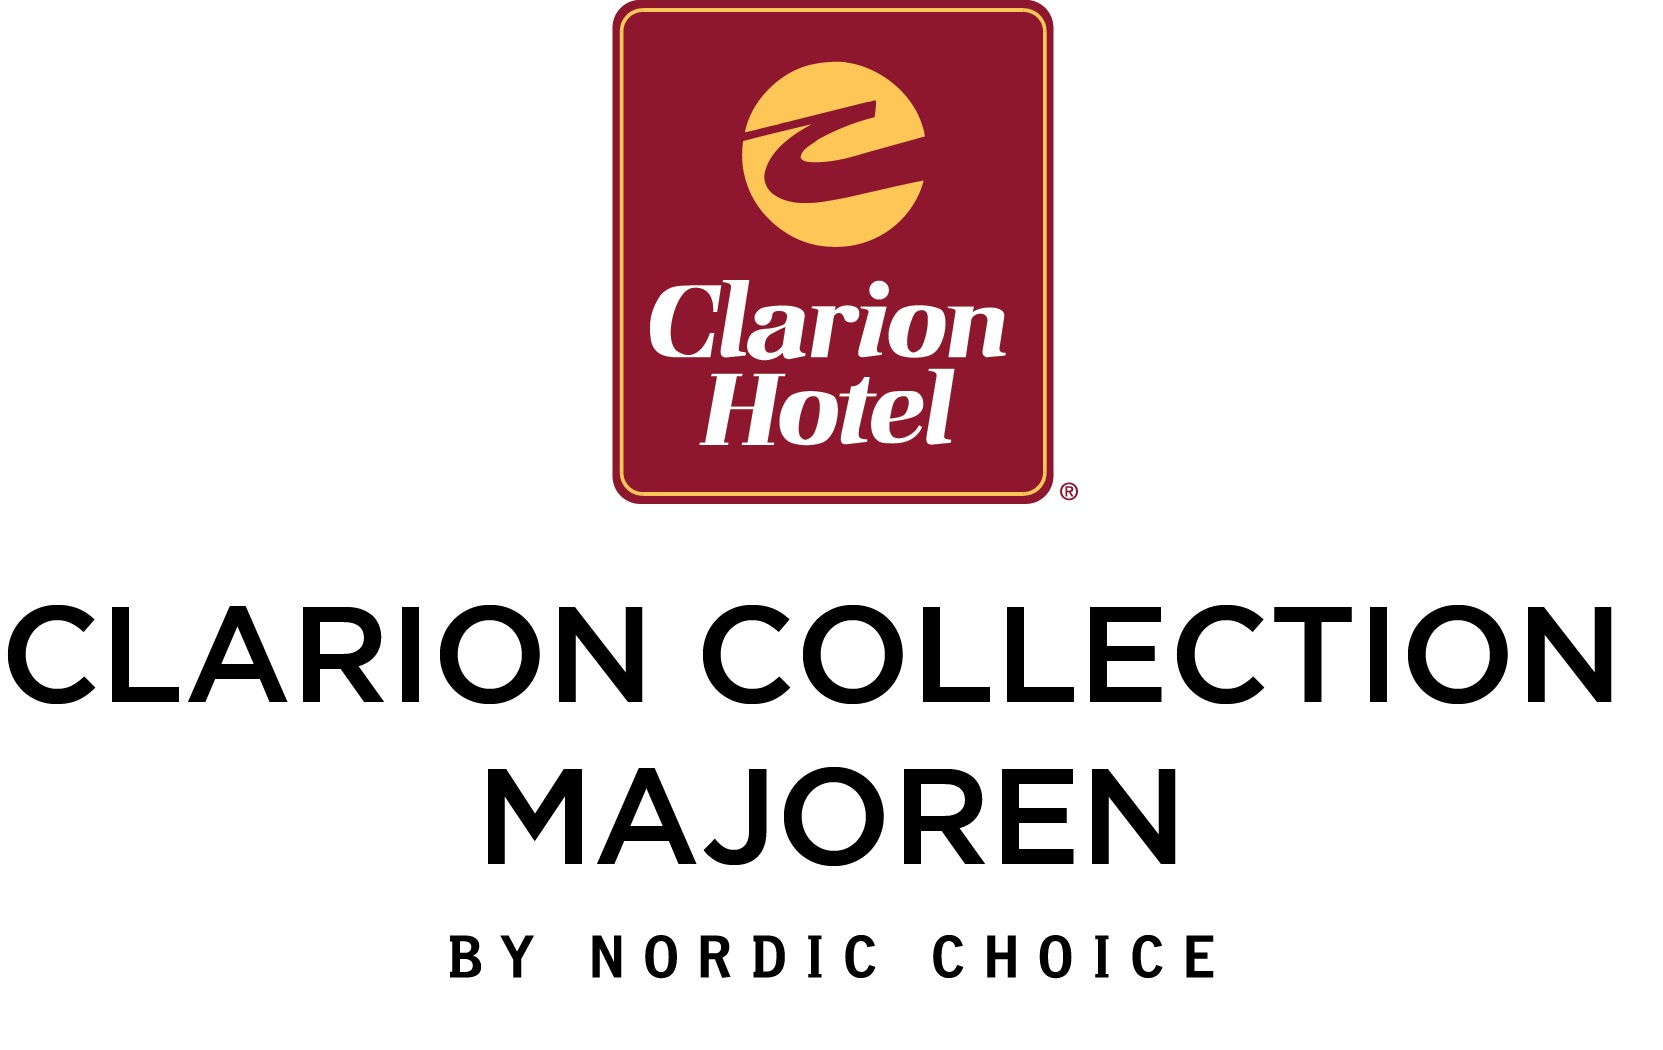 Clarion Collection Hotel Majoren